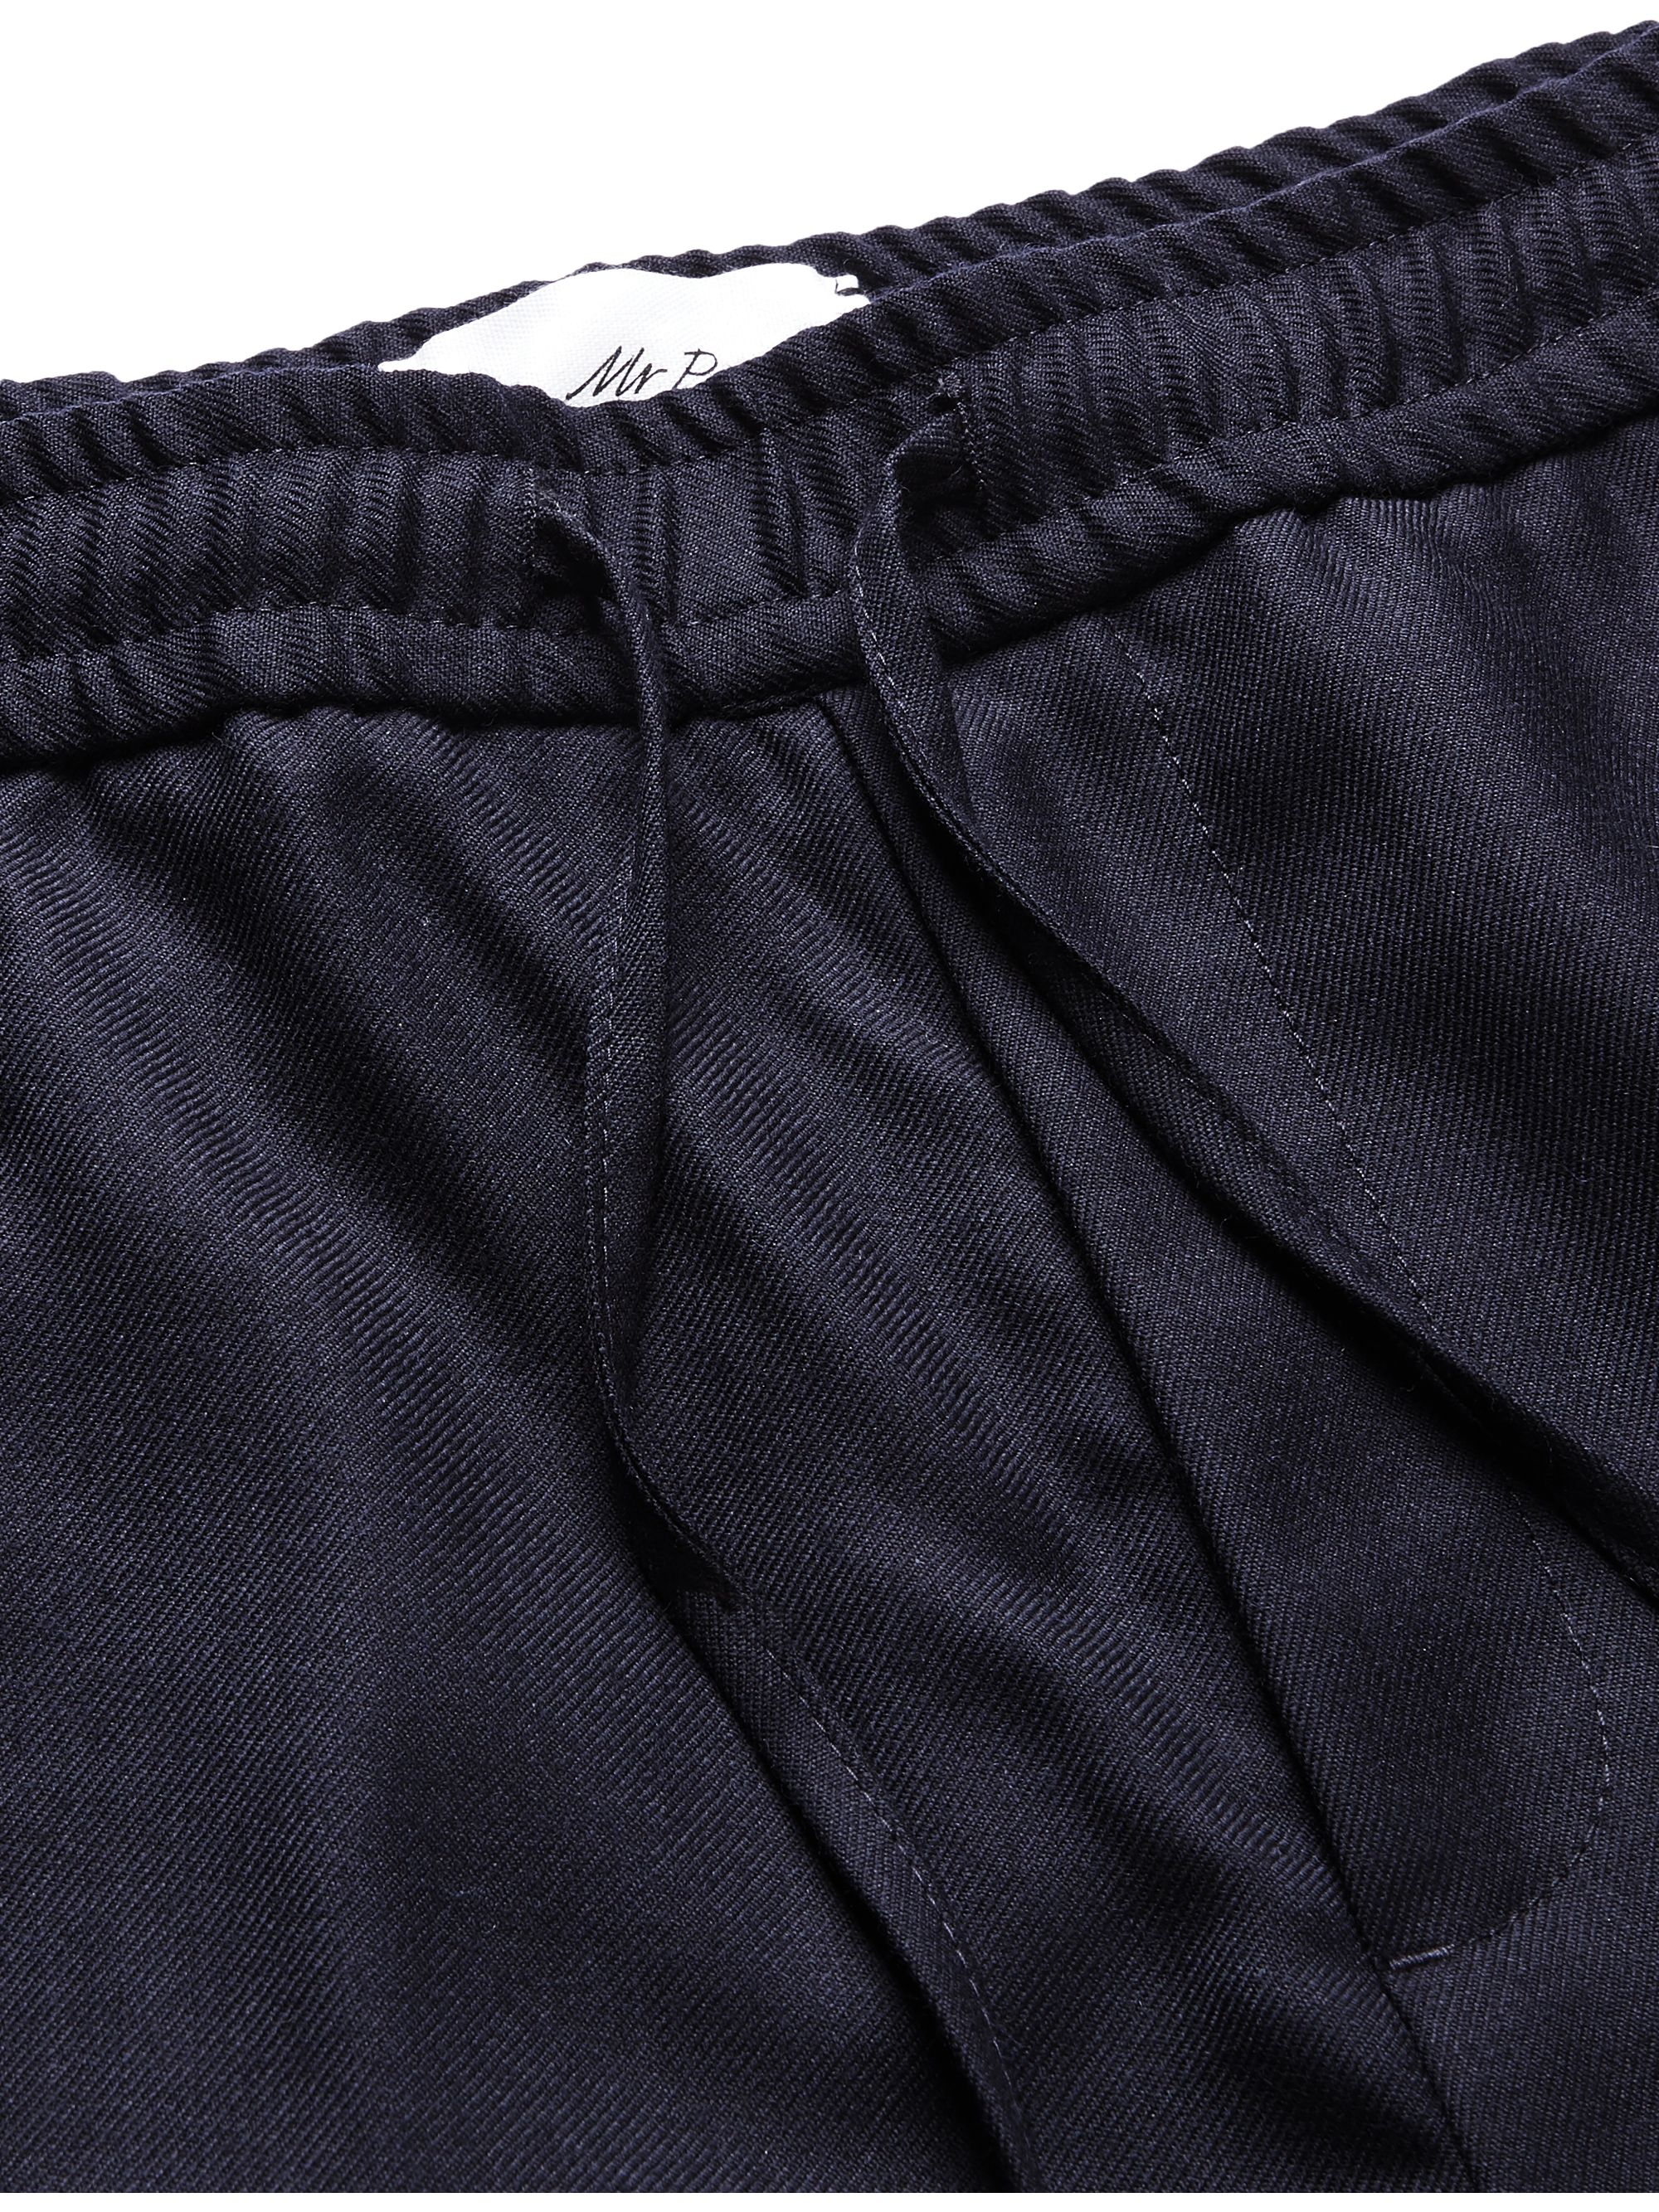 Mr P. Slim-Fit Midnight-Blue Worsted-Wool Drawstring Trousers